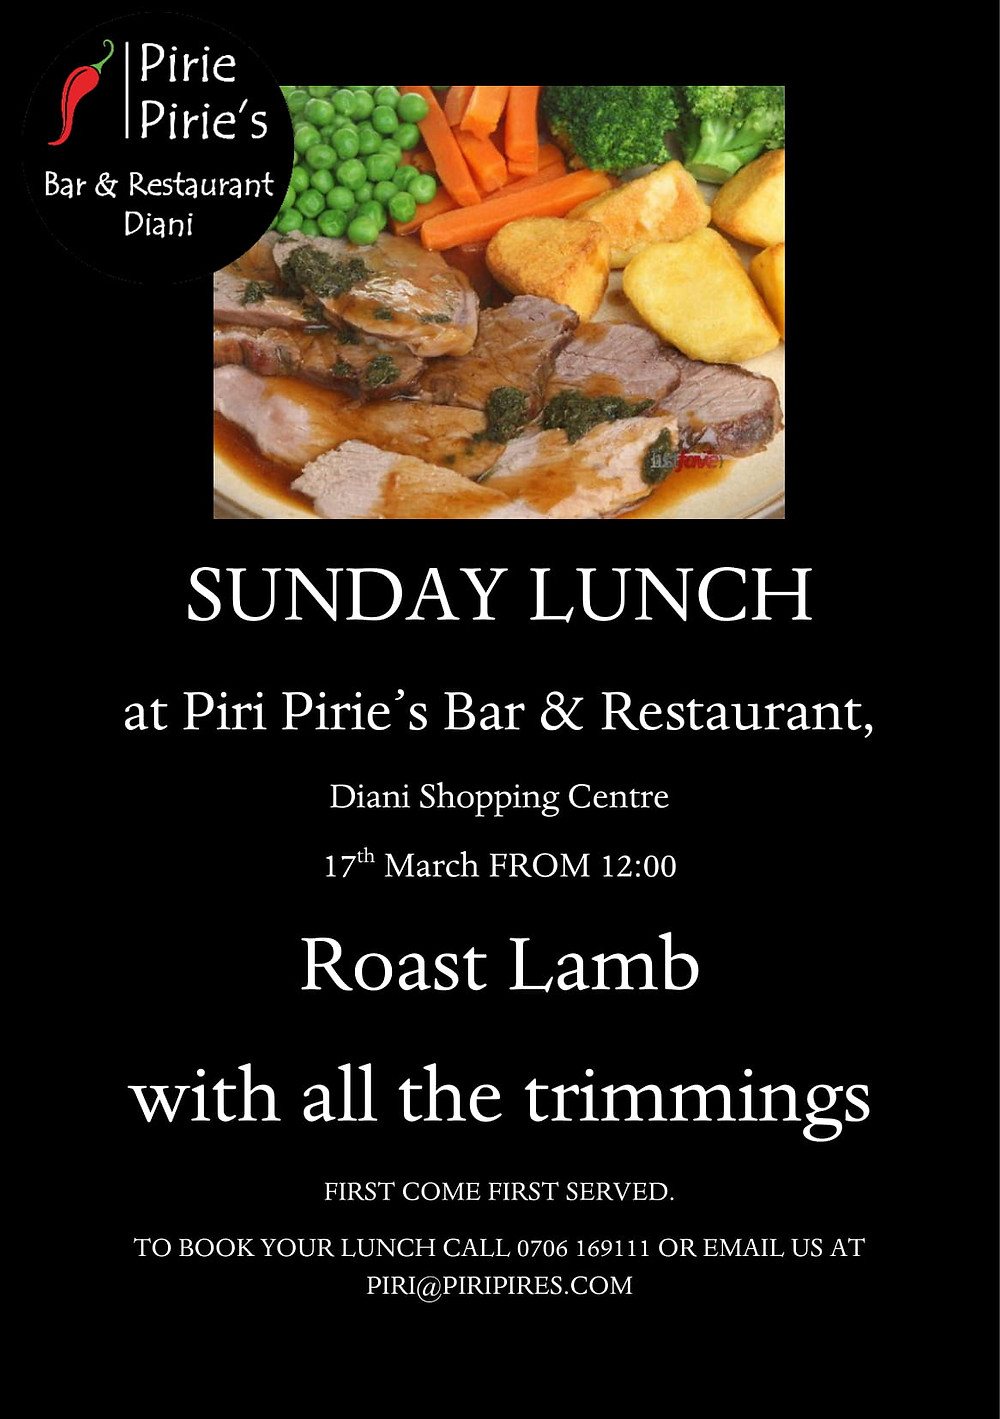 Traditional Roast Lunch at Piri Pirie's Sunday 17th March Roast Lamb.